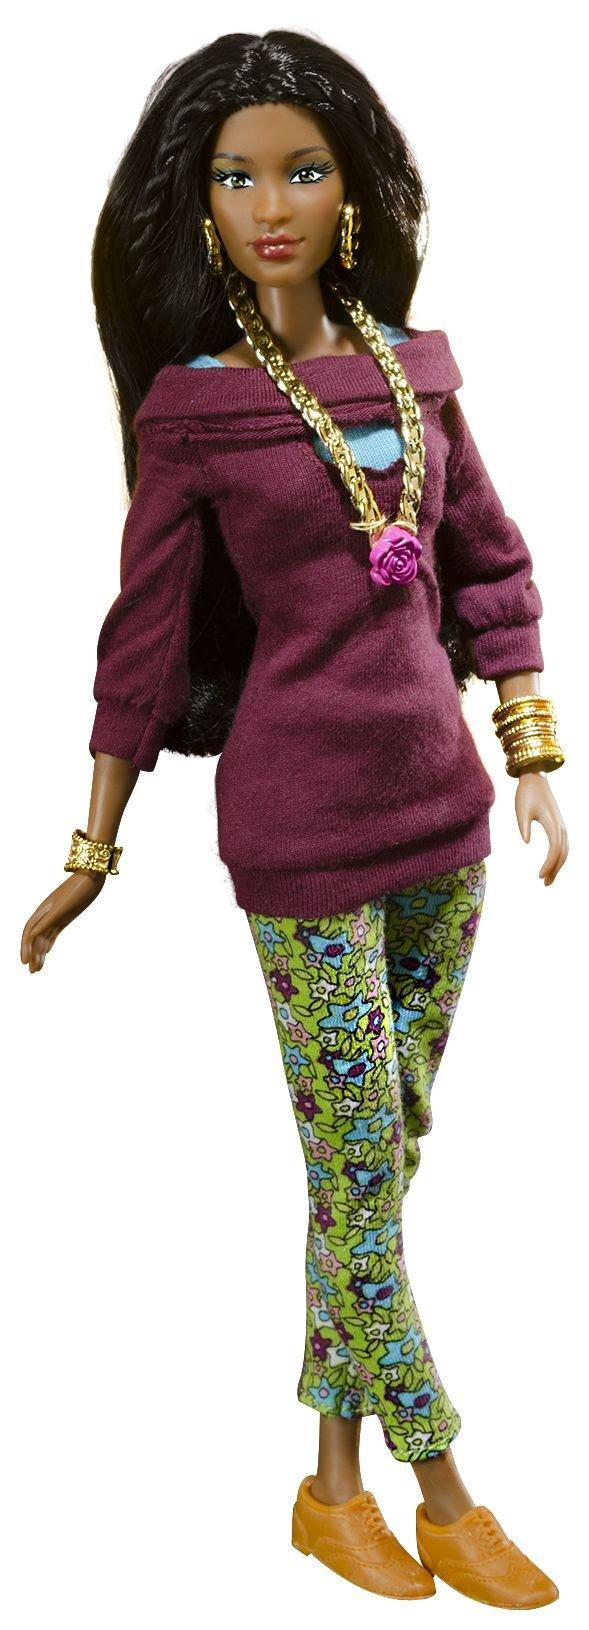 Dahlia ethnic doll in green leggings